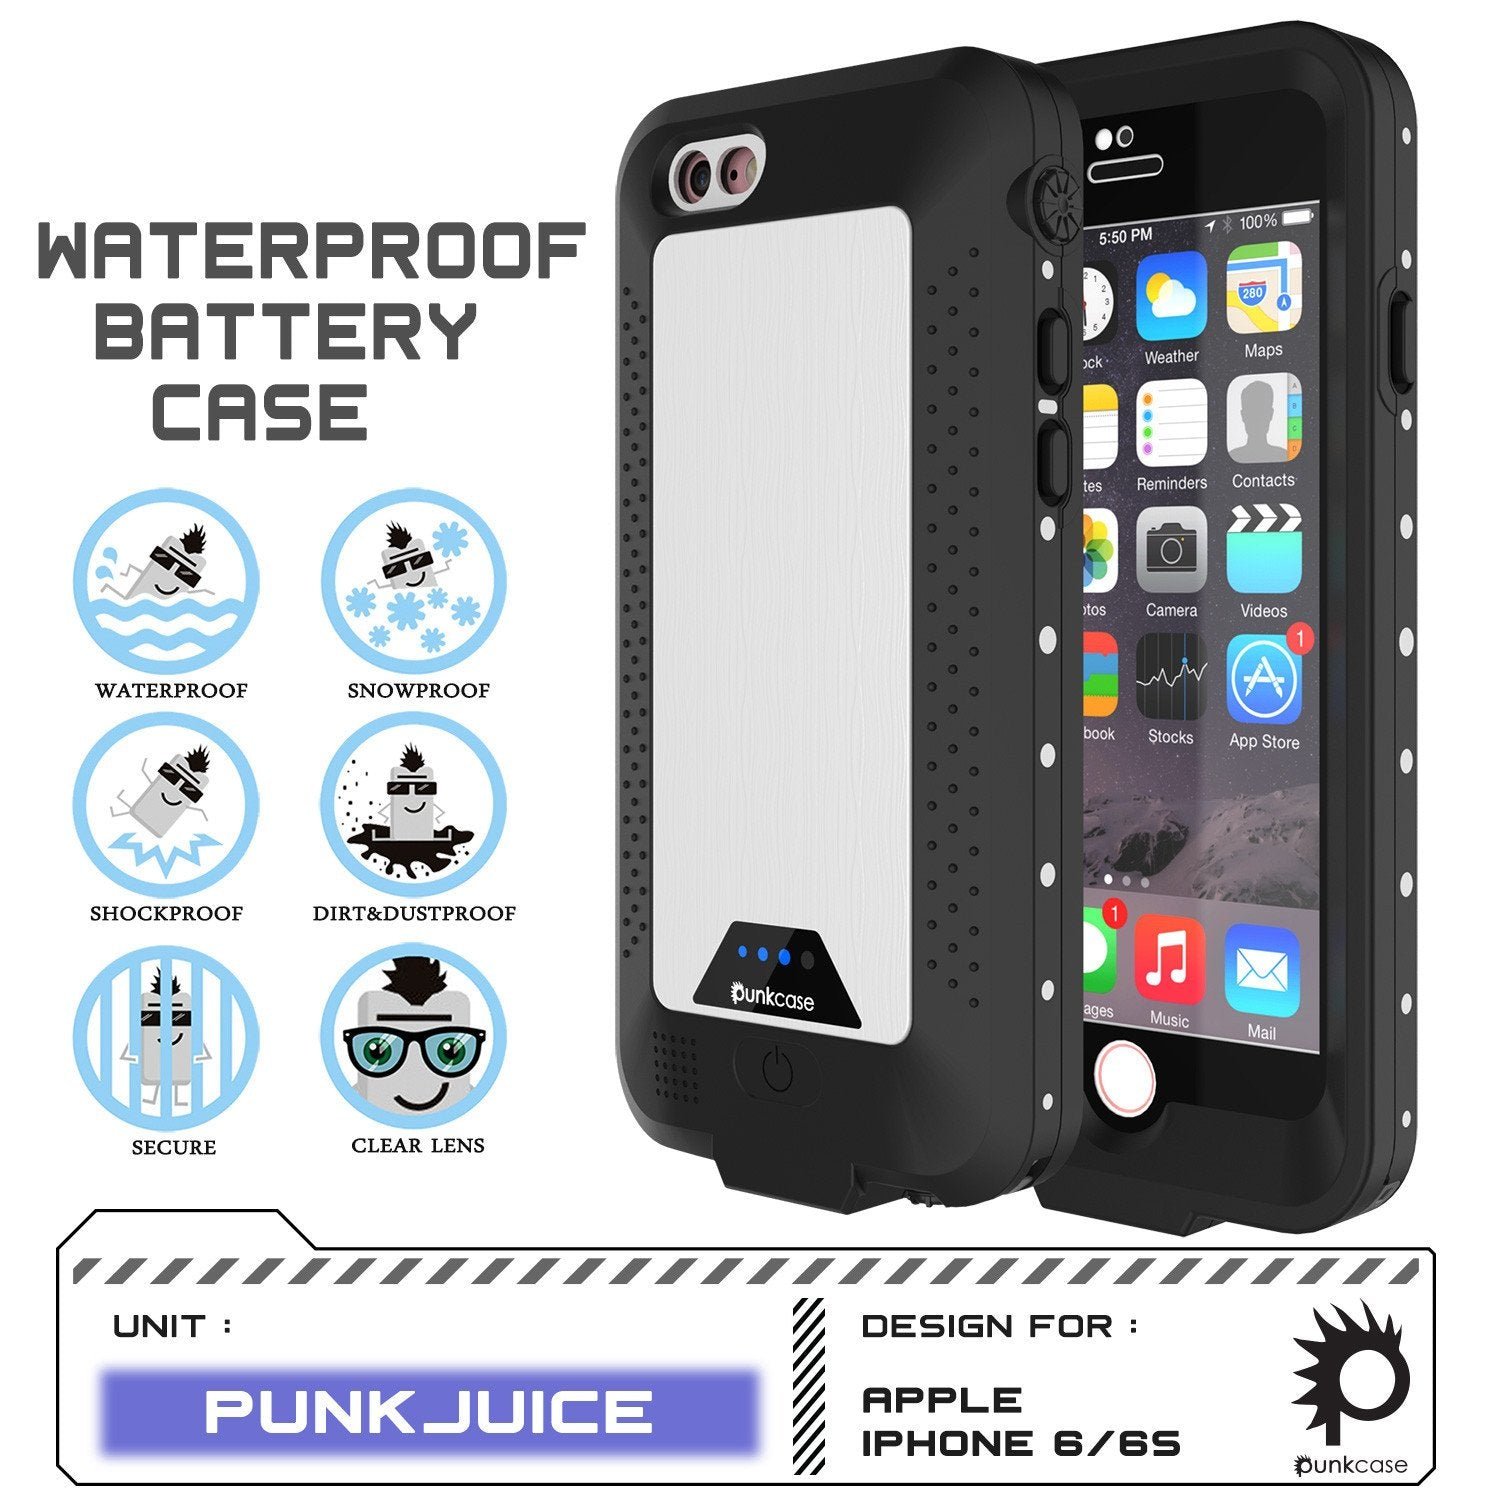 PunkJuice iPhone 6+ Plus/6s+ Plus Battery Case White - Waterproof Power Juice Bank w/ 4300mAh